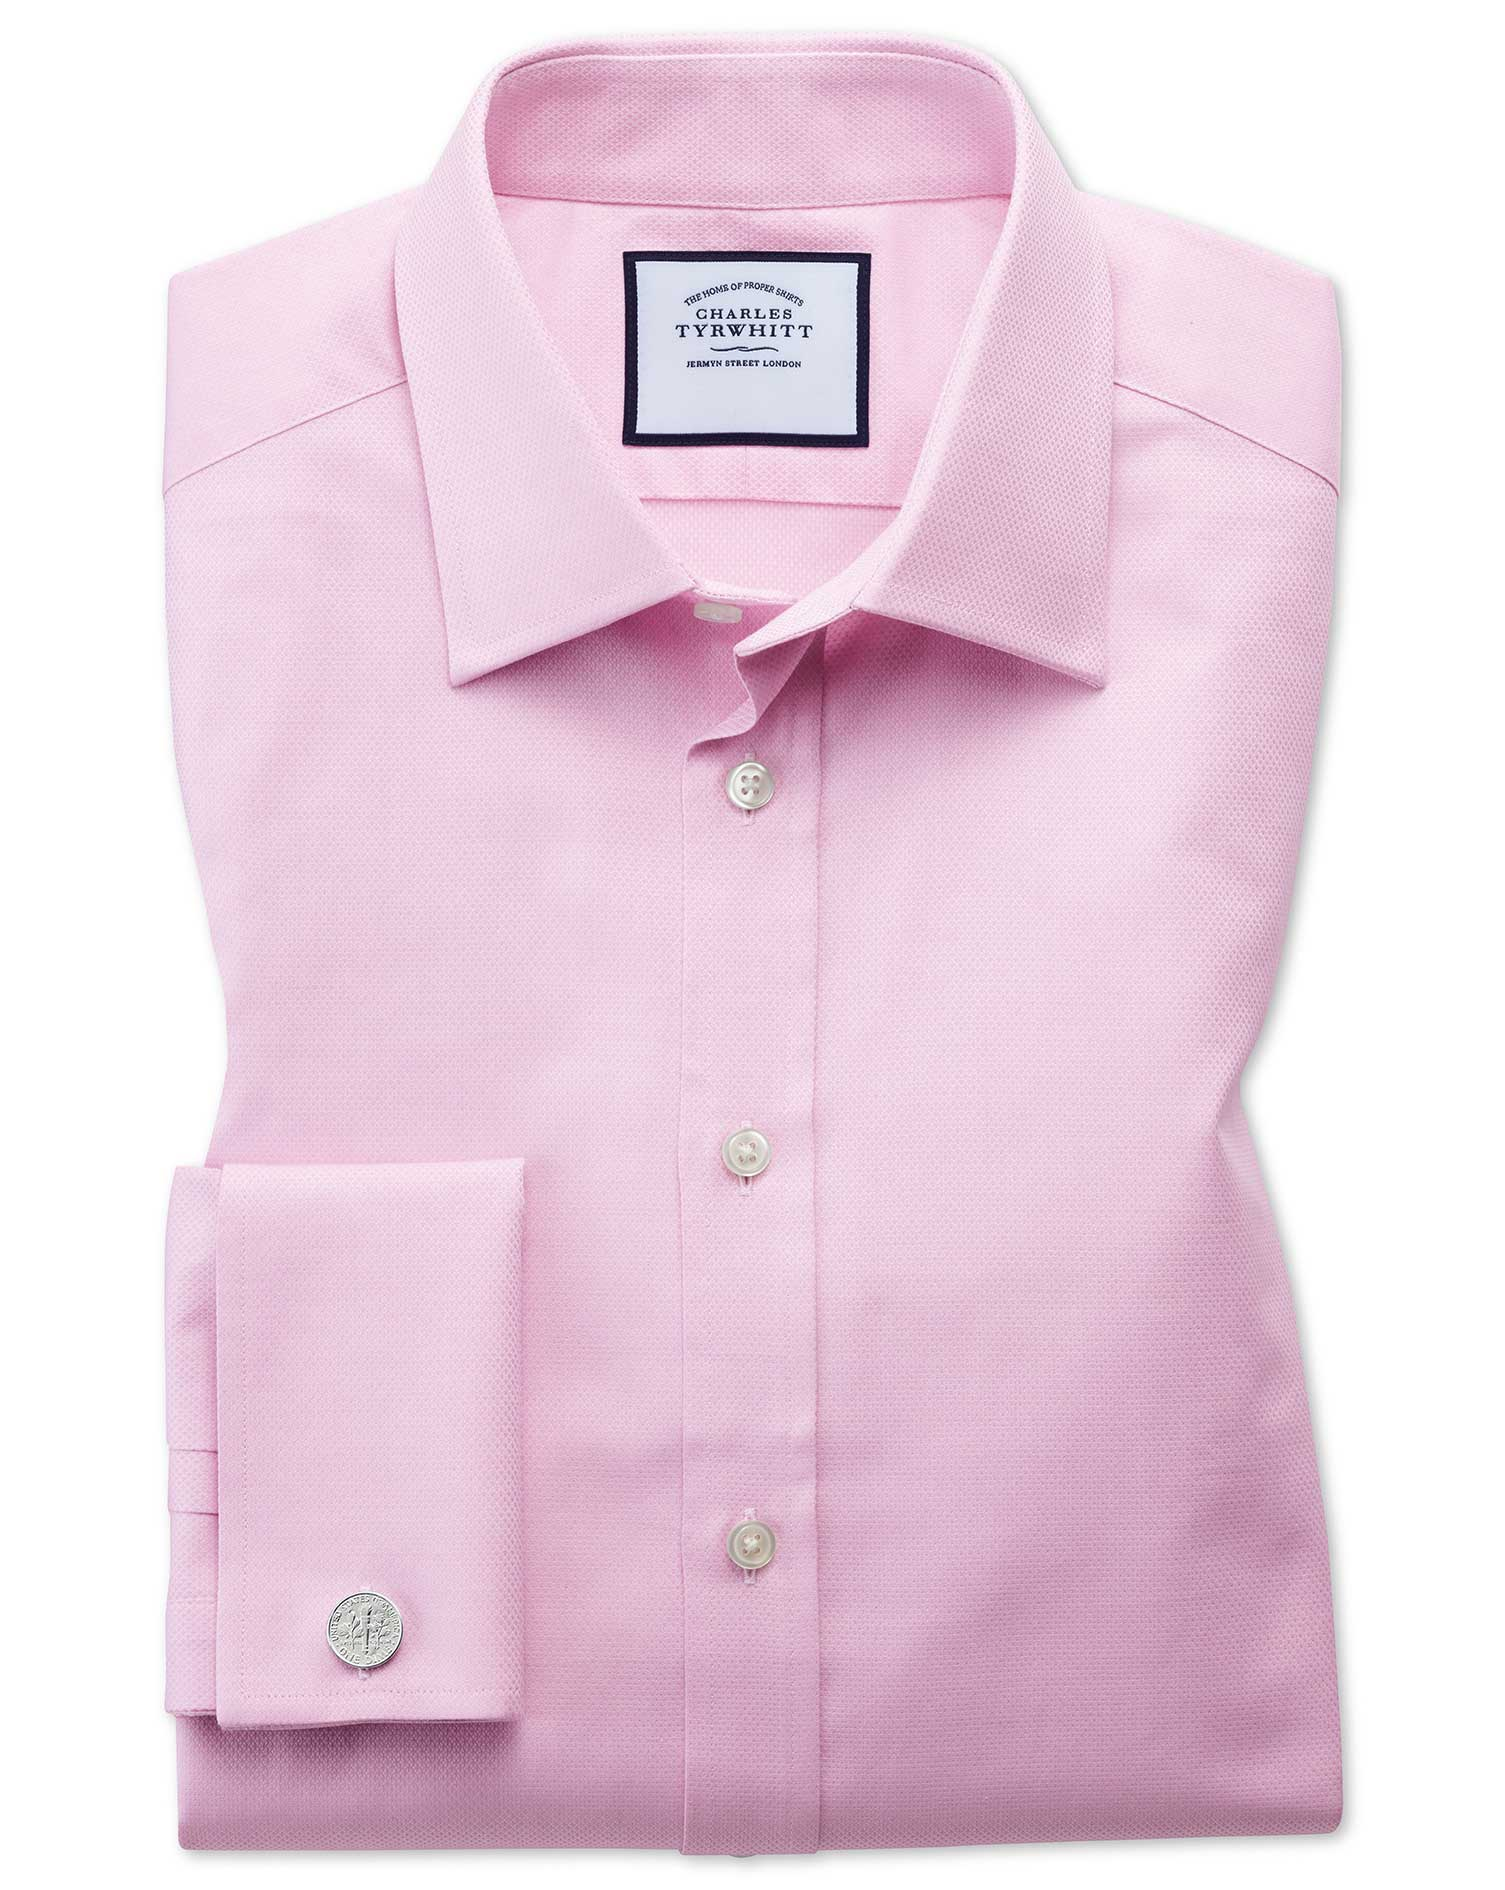 Extra Slim Fit Egyptian Cotton Trellis Weave Pink Formal Shirt Double Cuff Size 16/35 by Charles Tyr